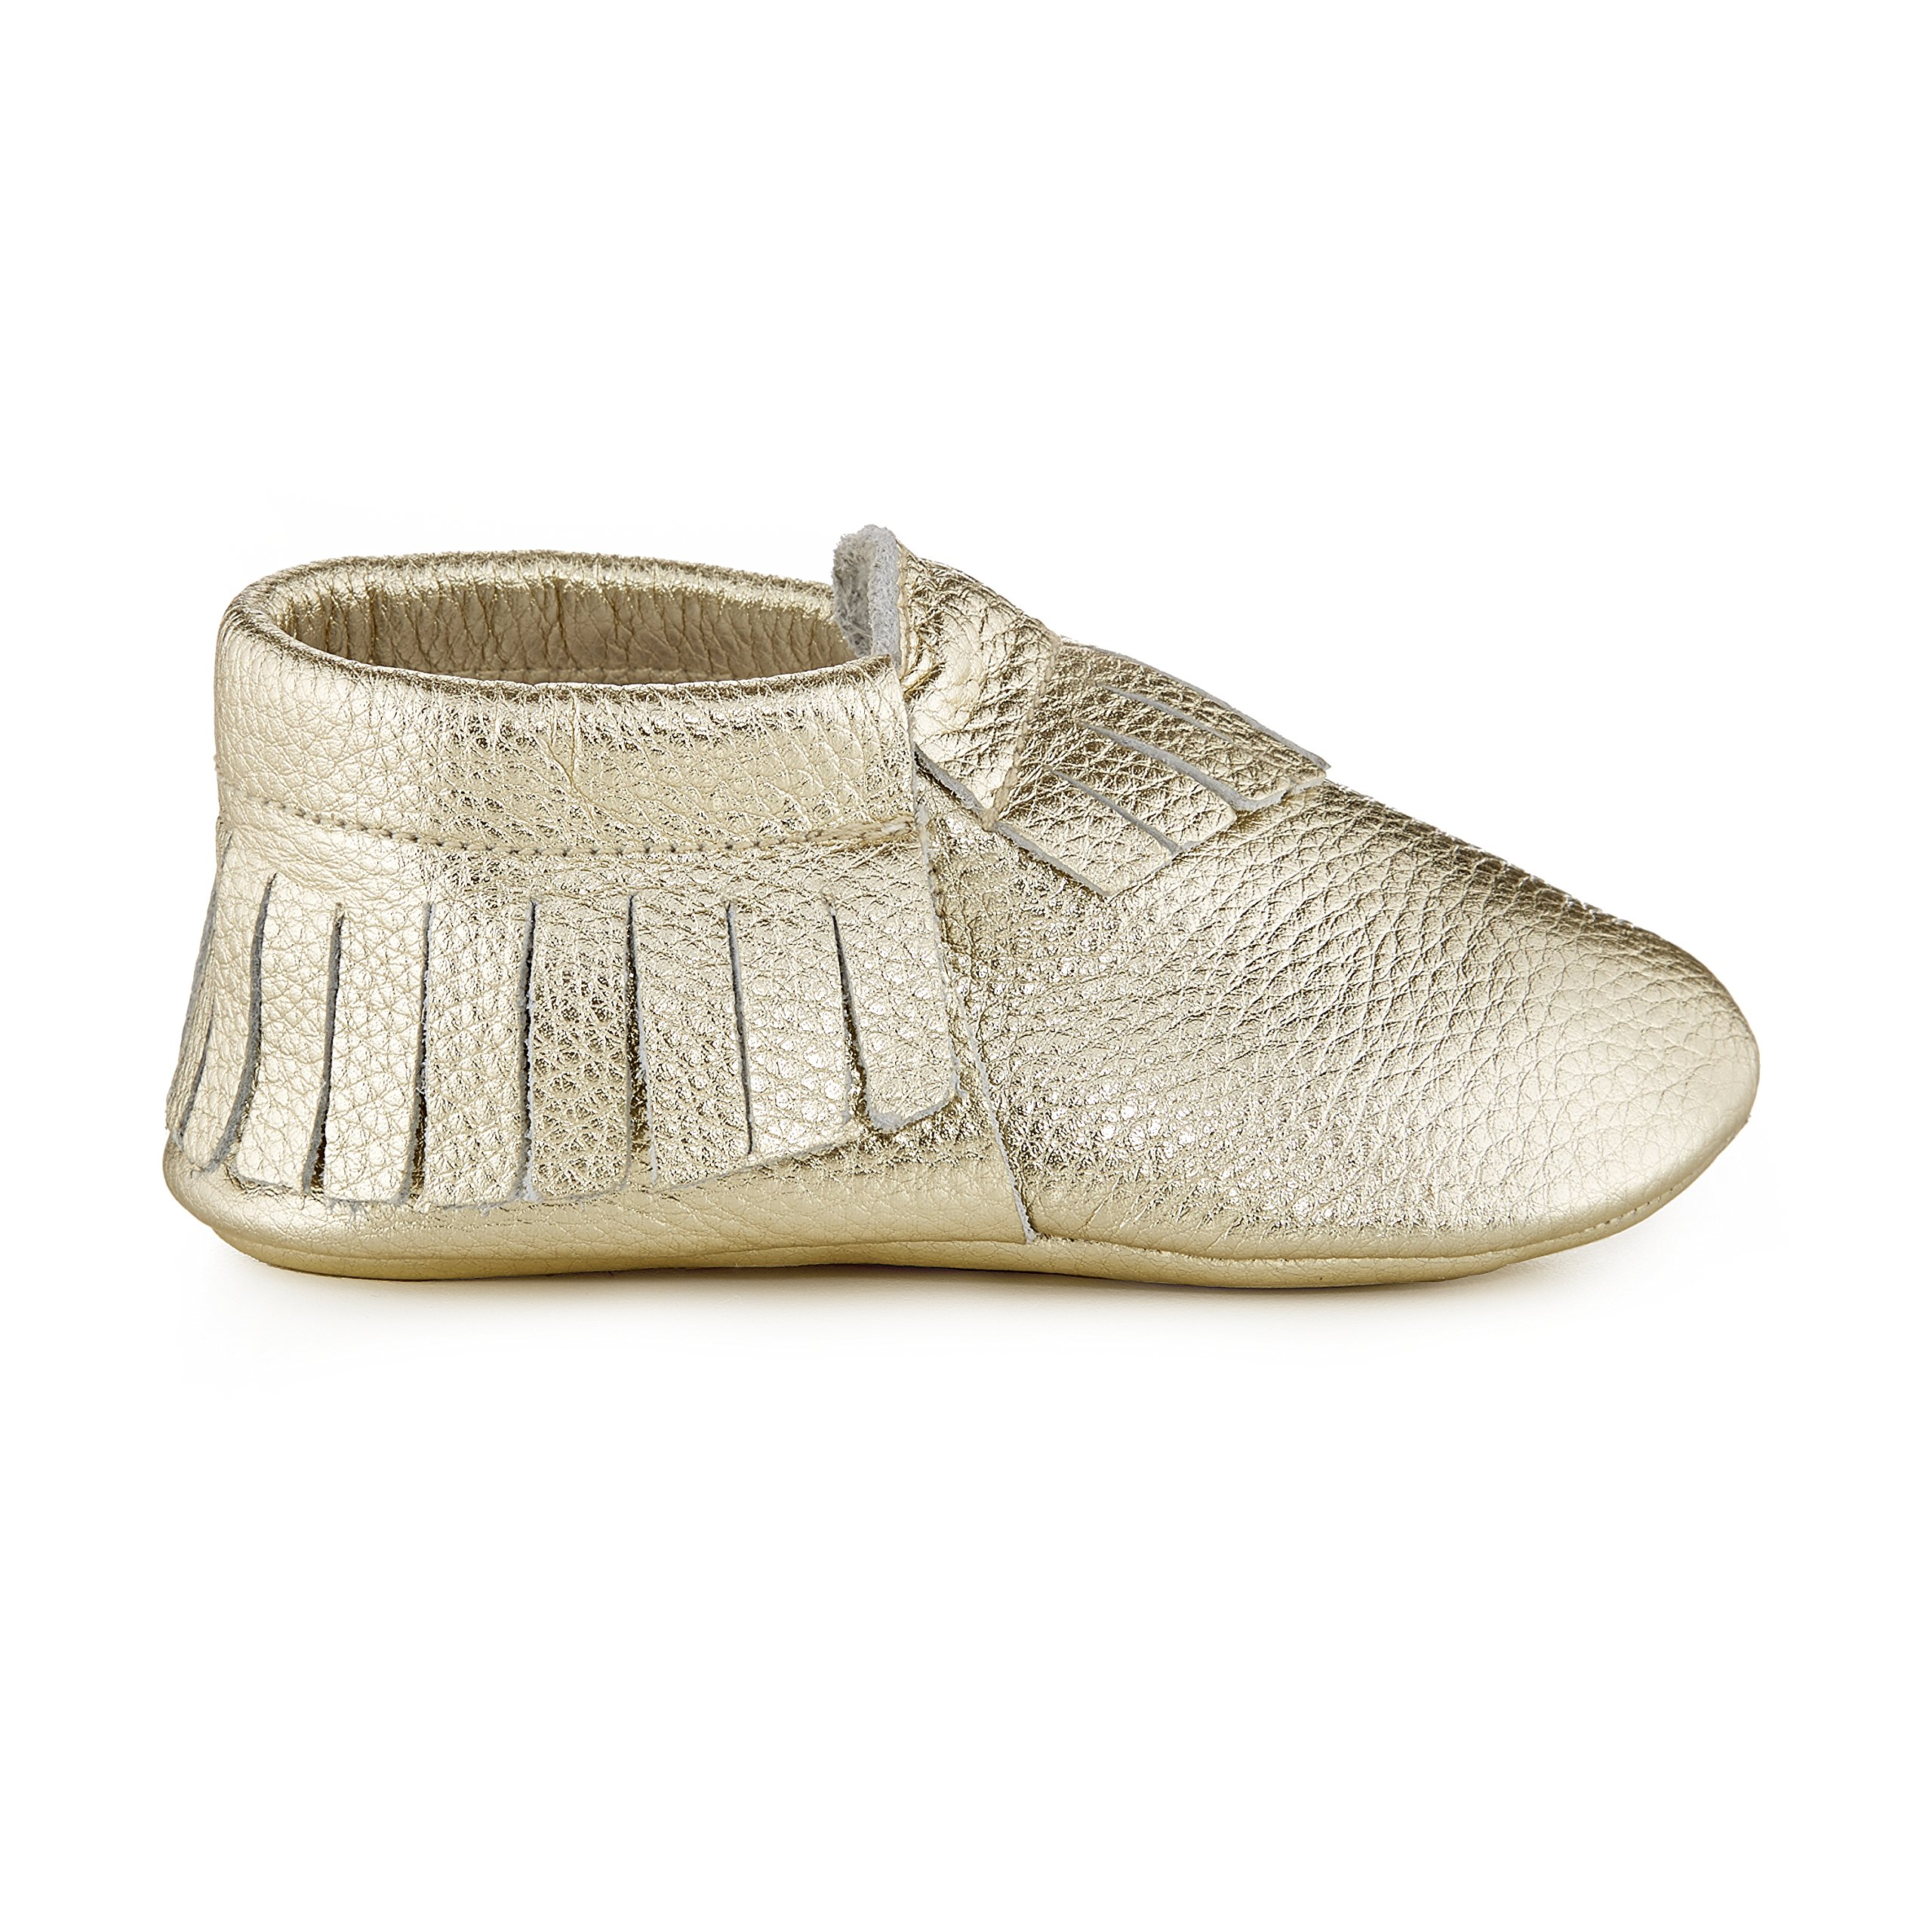 Babe Basics Baby Moccasins Soft-Soled Genuine Leather Moccasins for Babies and Toddlers (XS | 0-6m | US 2.5-3.5, Metallic Gold)